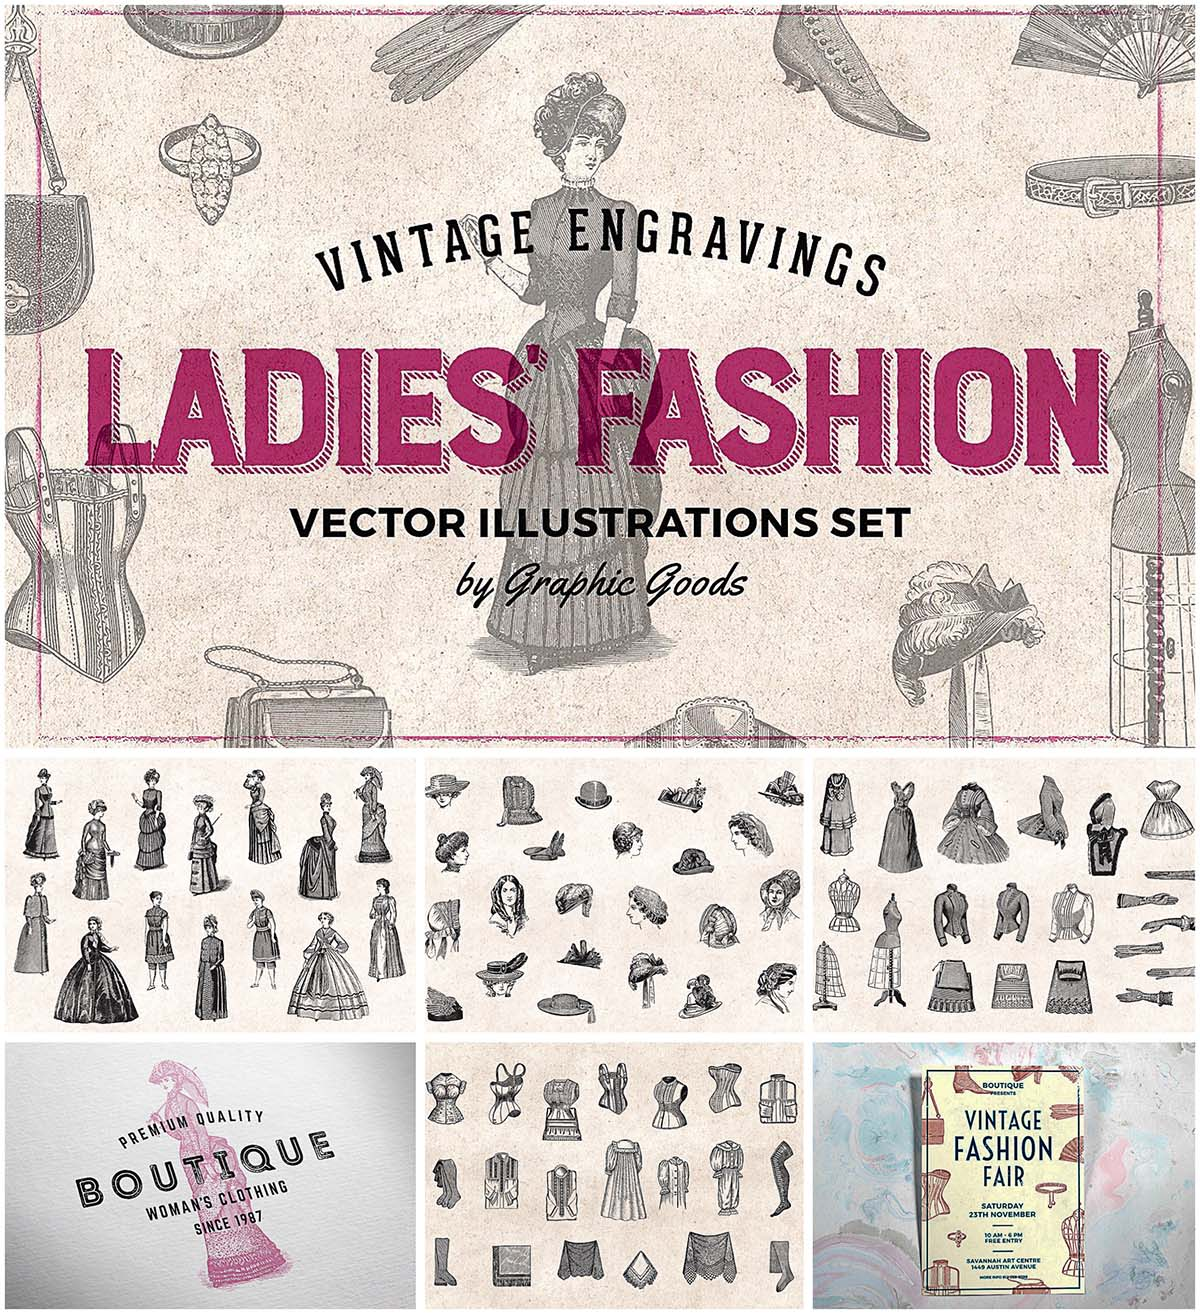 Ladies fashion engravings collection